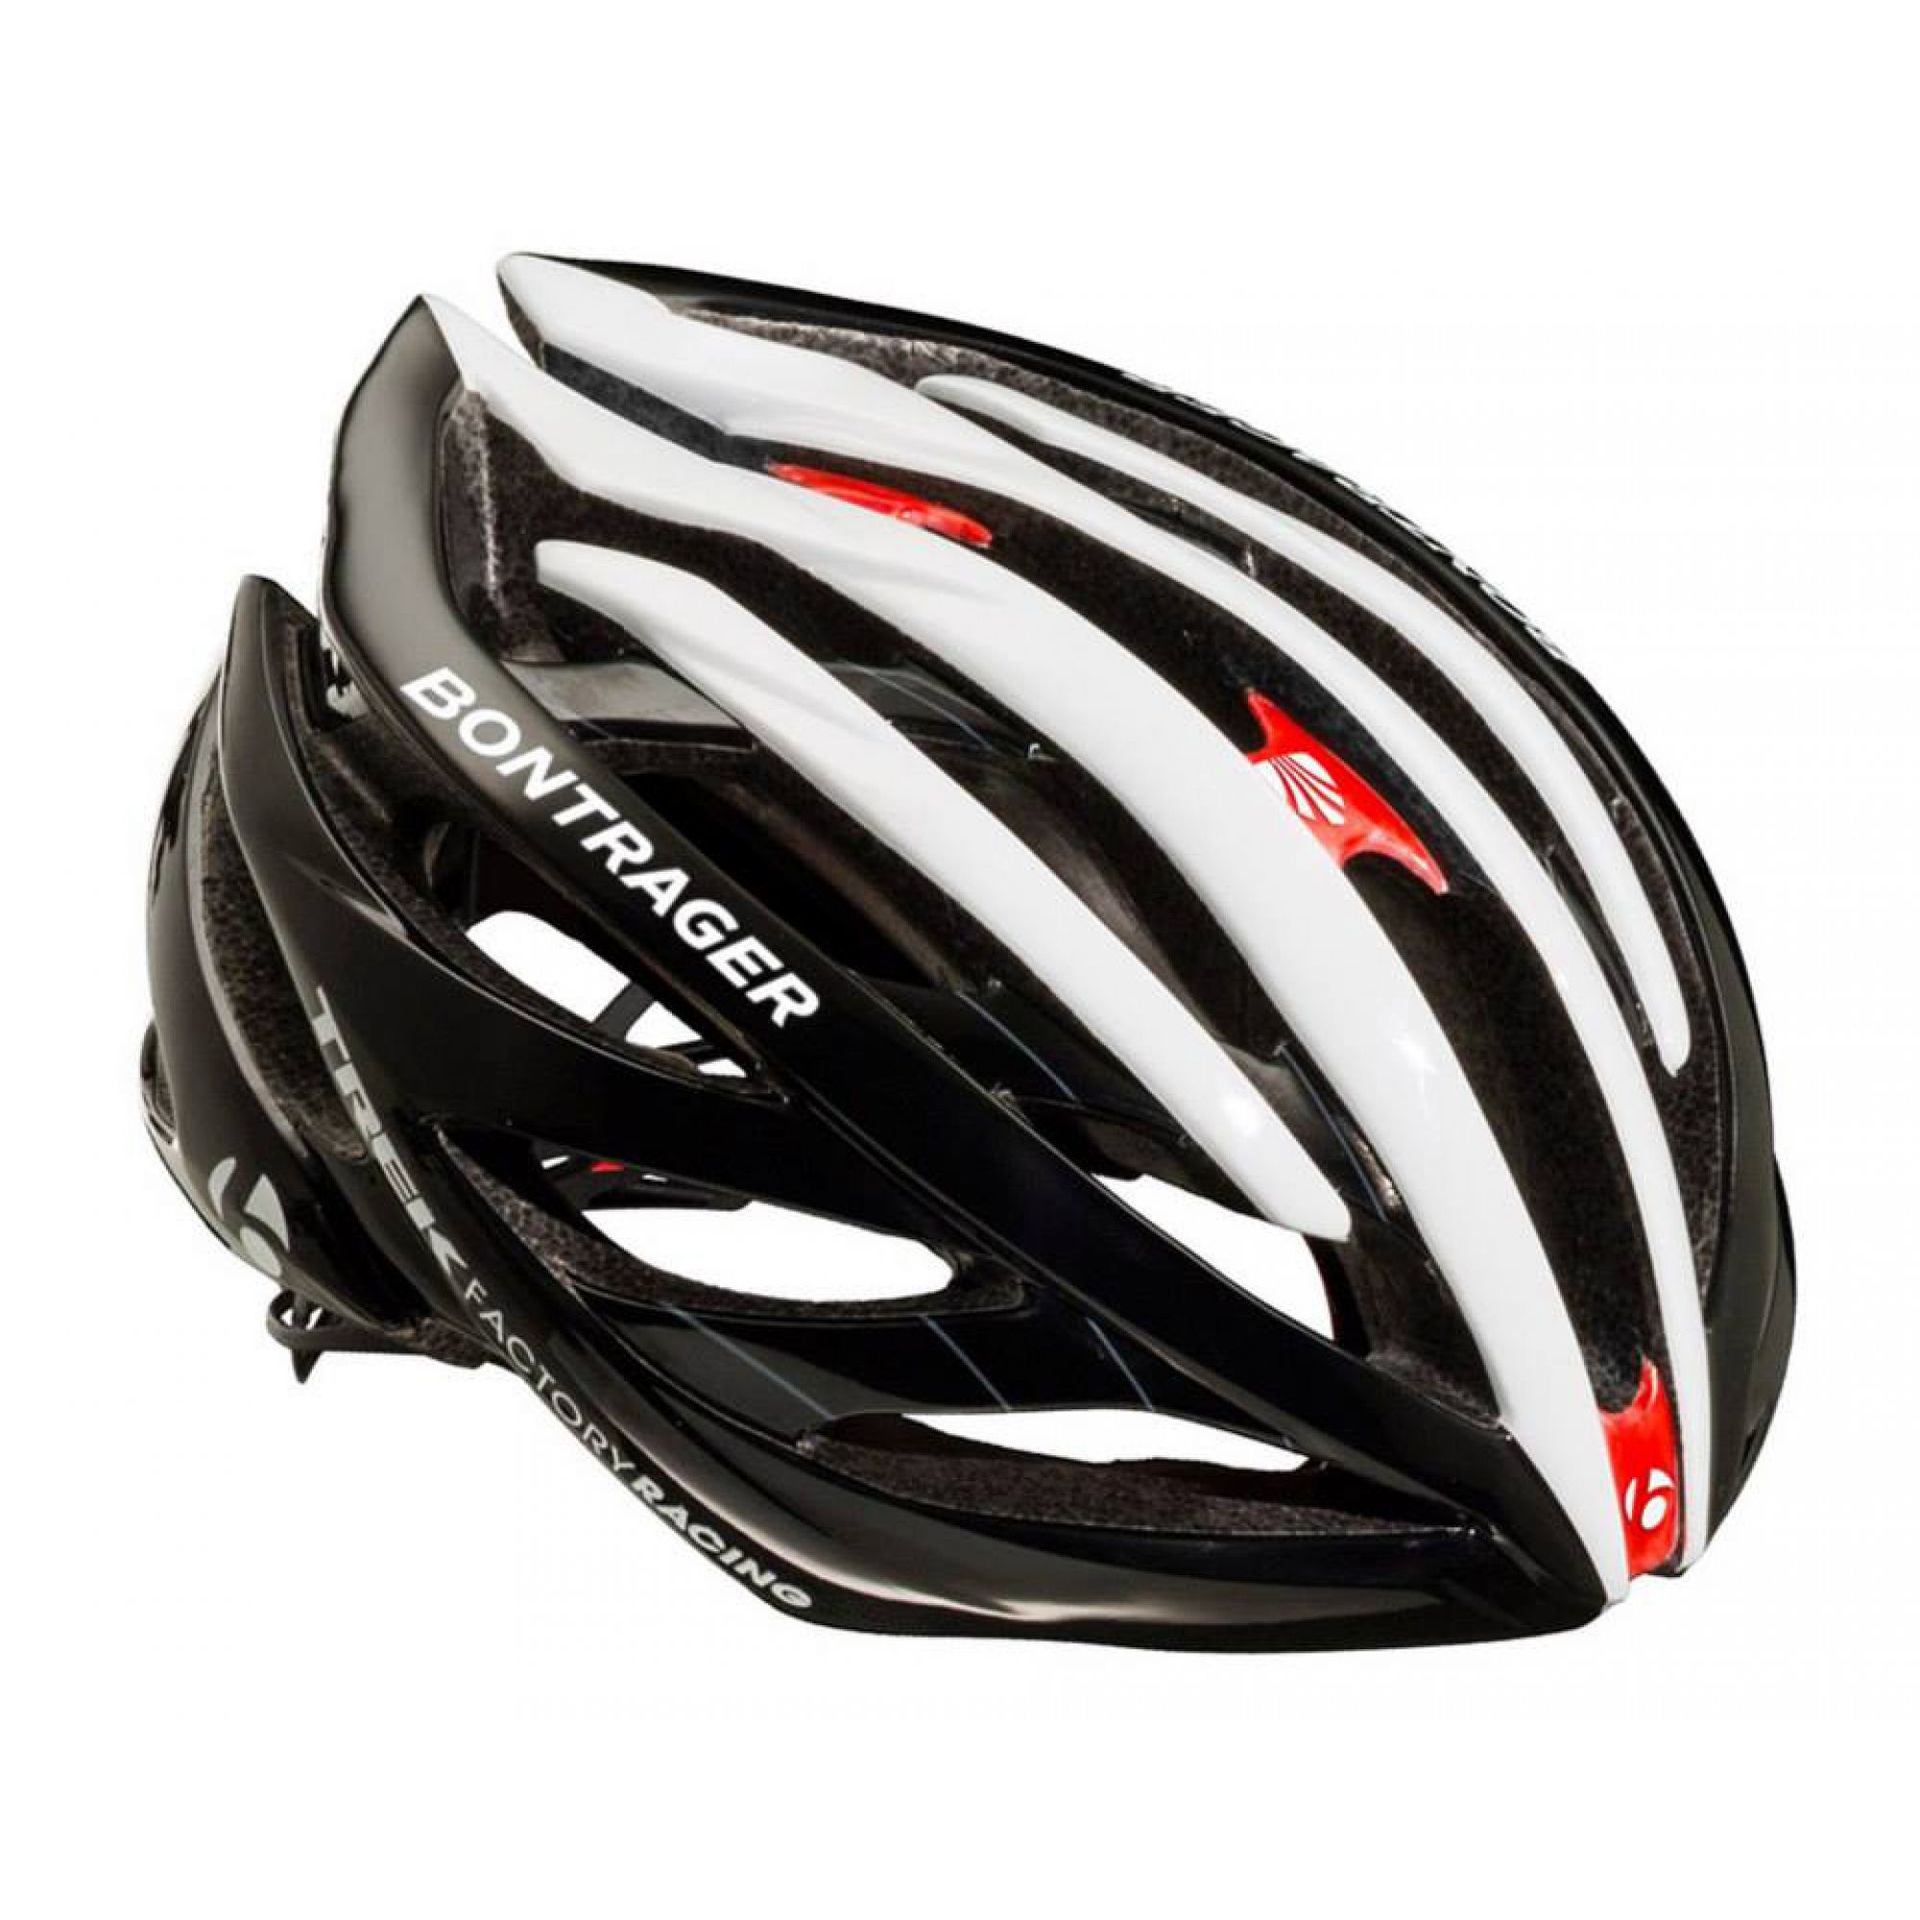 KASK ROWEROWY BONTRAGER VELOCIS FACTORY RACING